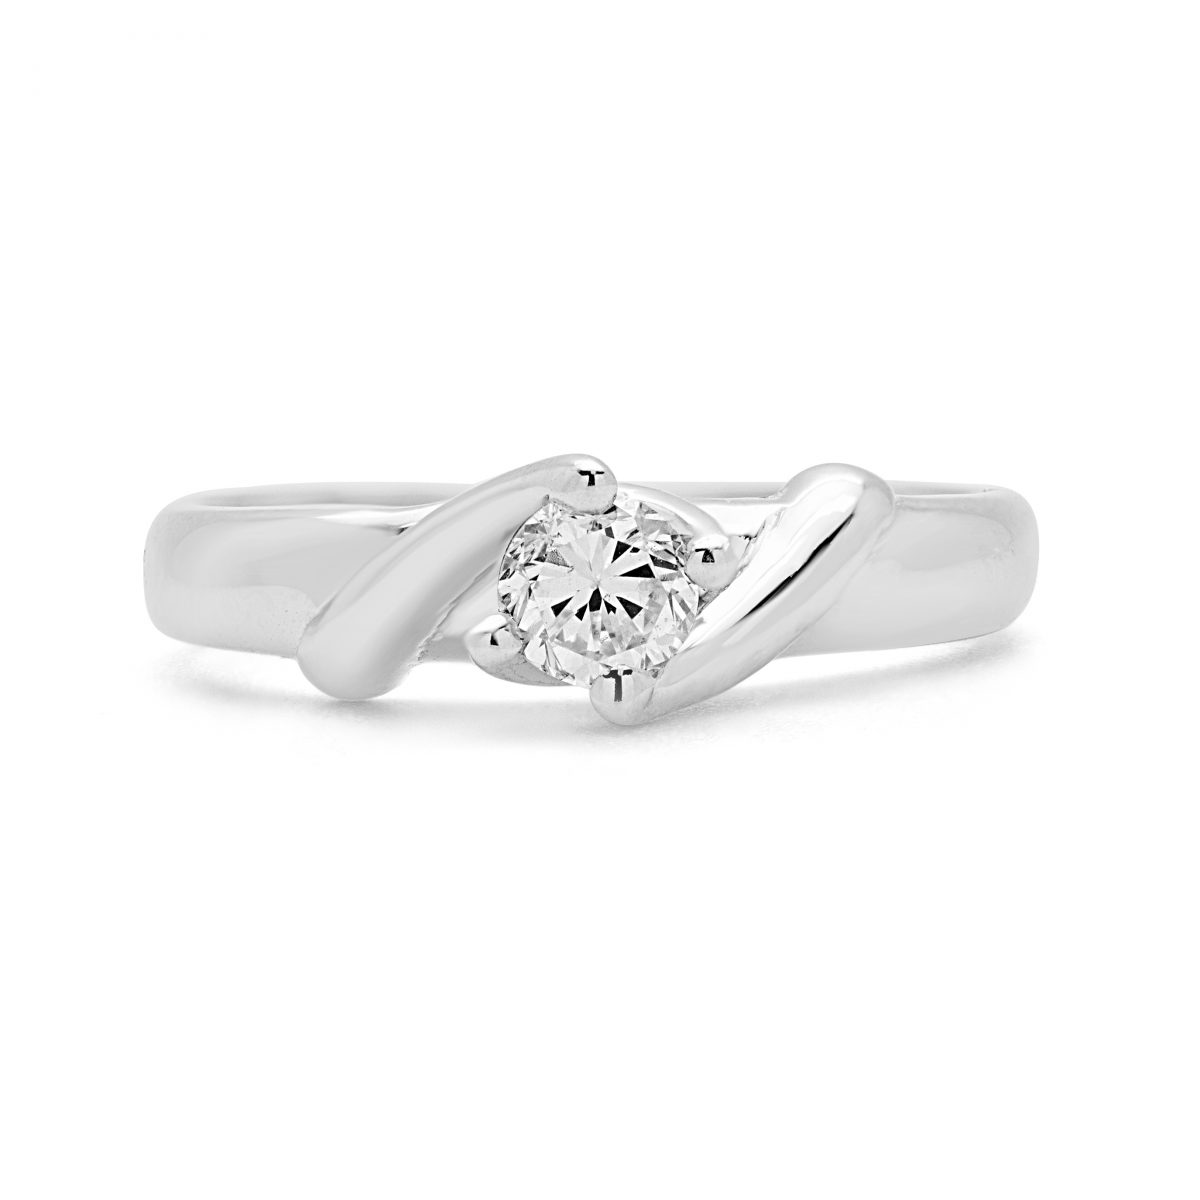 b michael diamond pave ring paris rings solitaire engagement